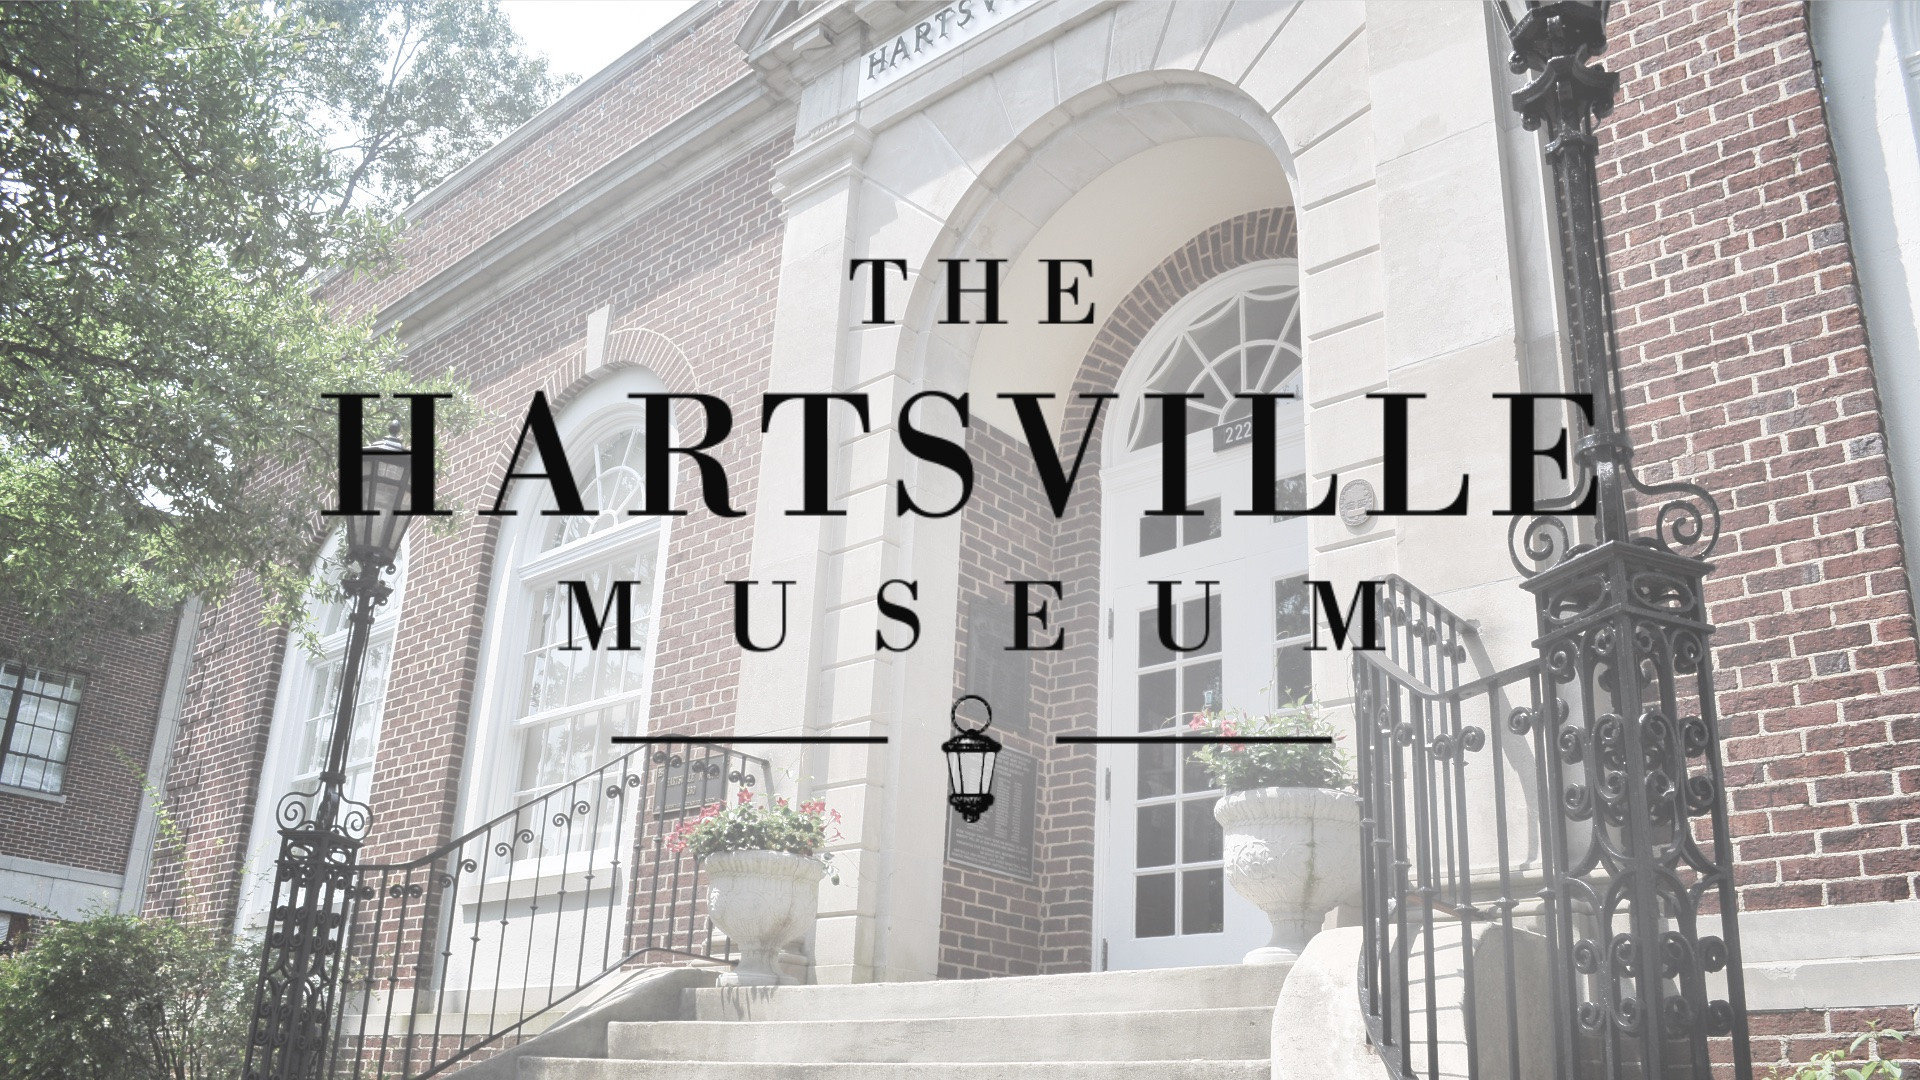 The Hartsville Museum facade and logo.